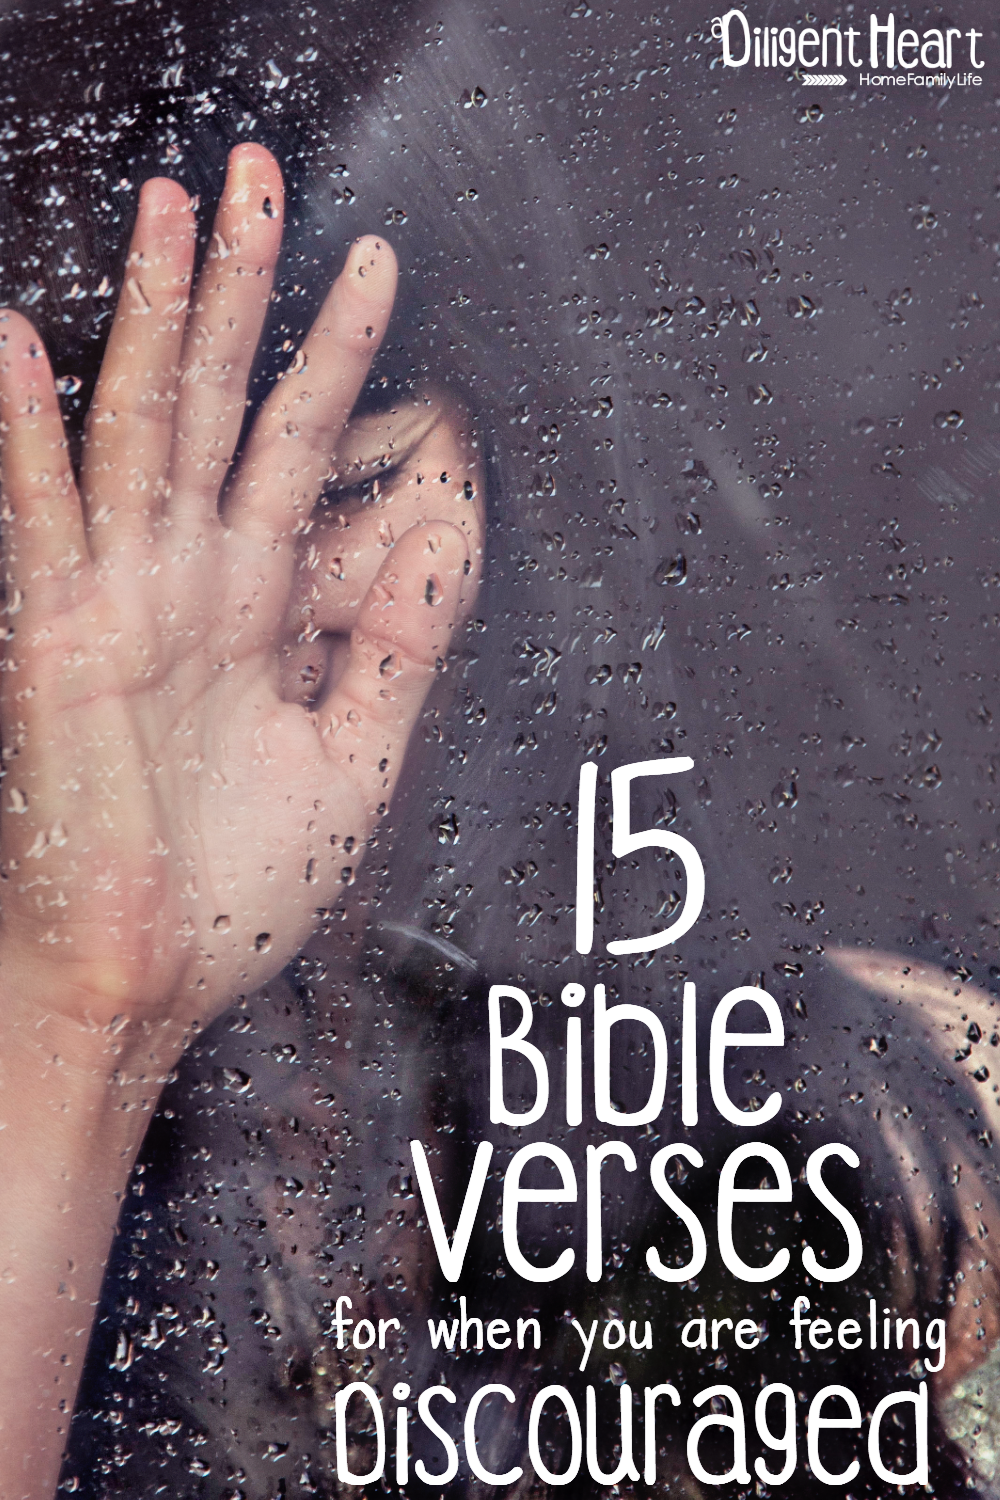 Throwing In The Towel Quotes 15 Bible Verses For When You Are Feeling Discouraged